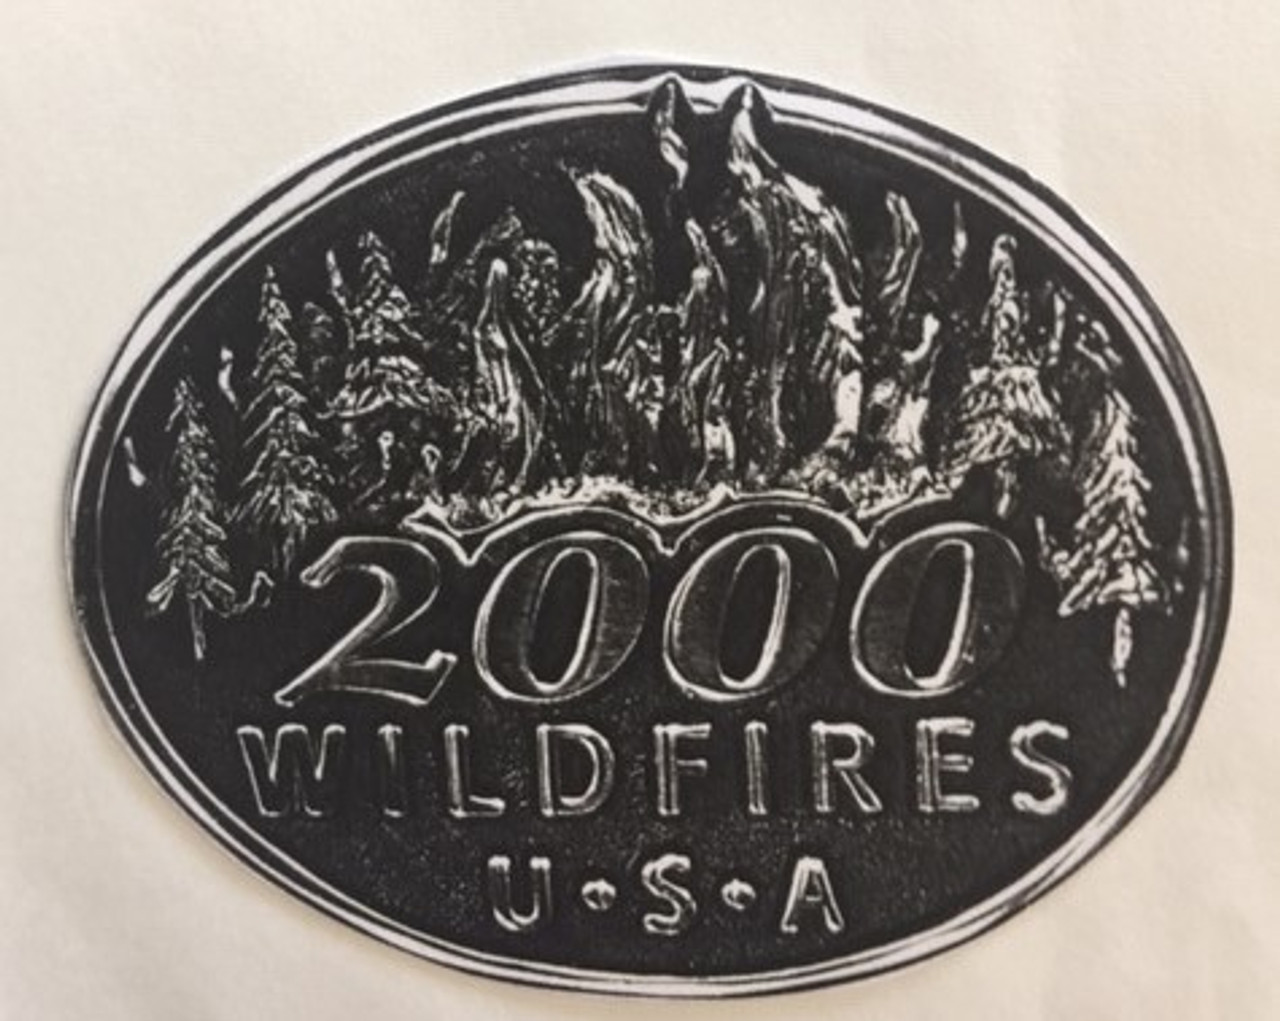 2000 Wildfires Buckle